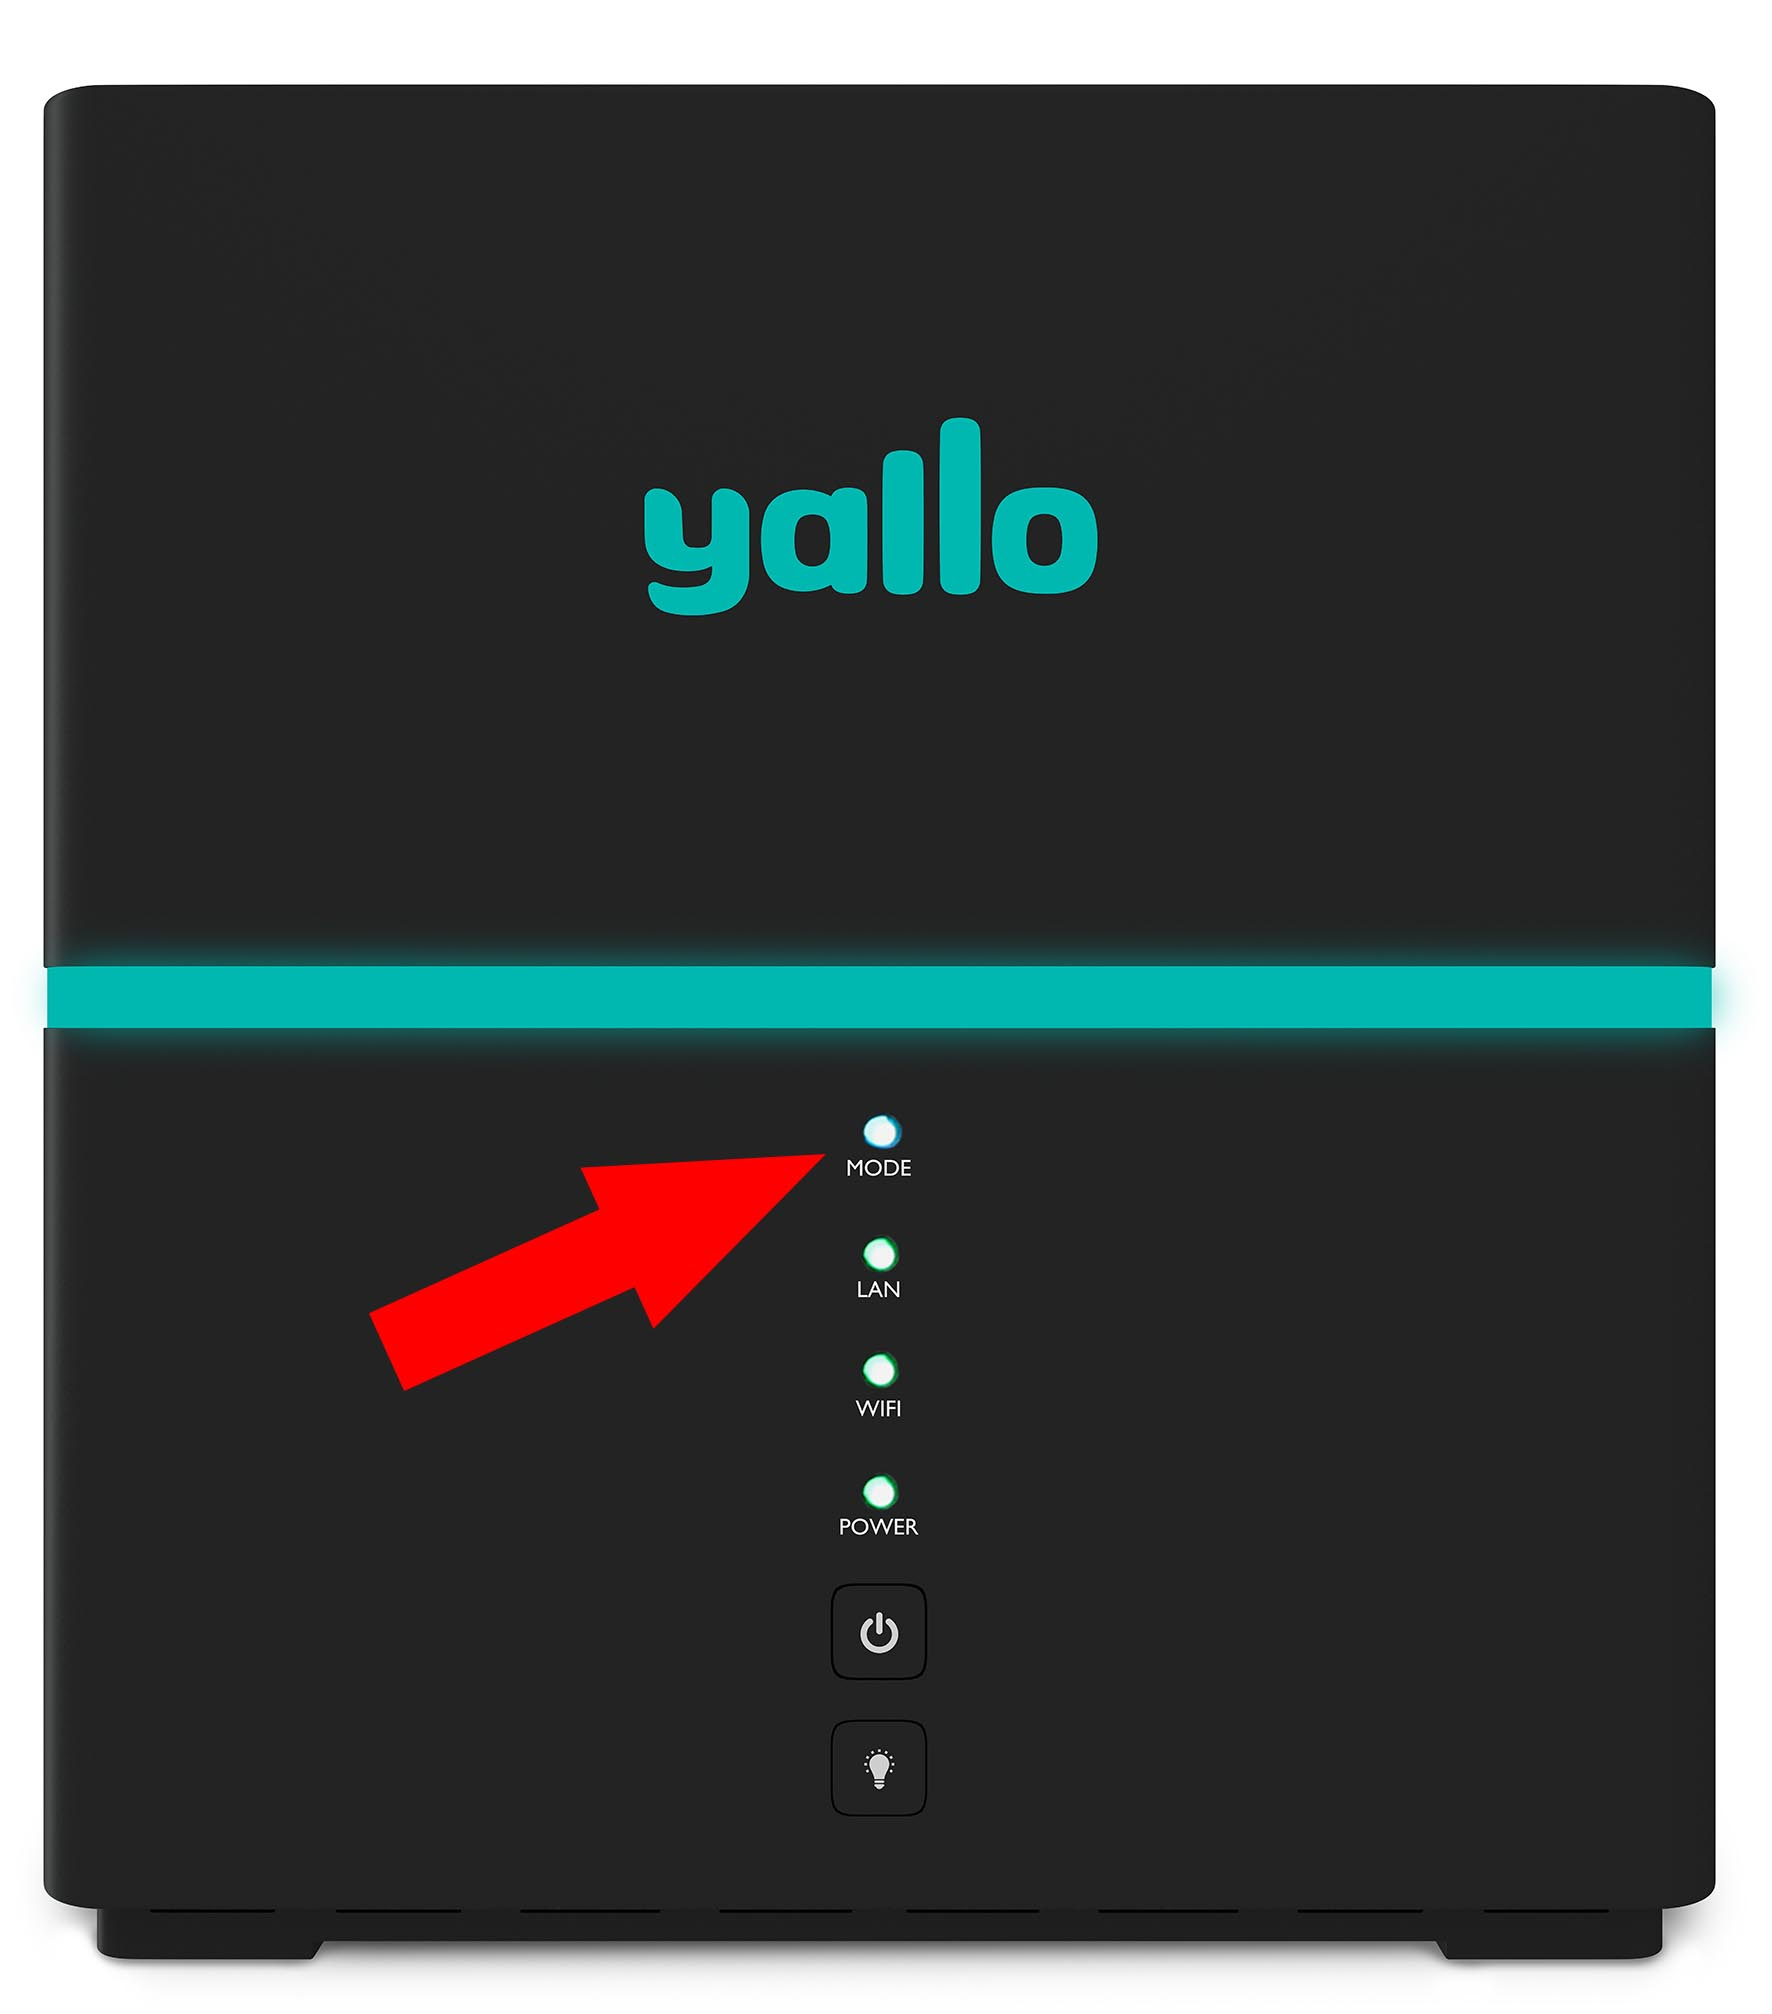 13_yallo_Box.jpg